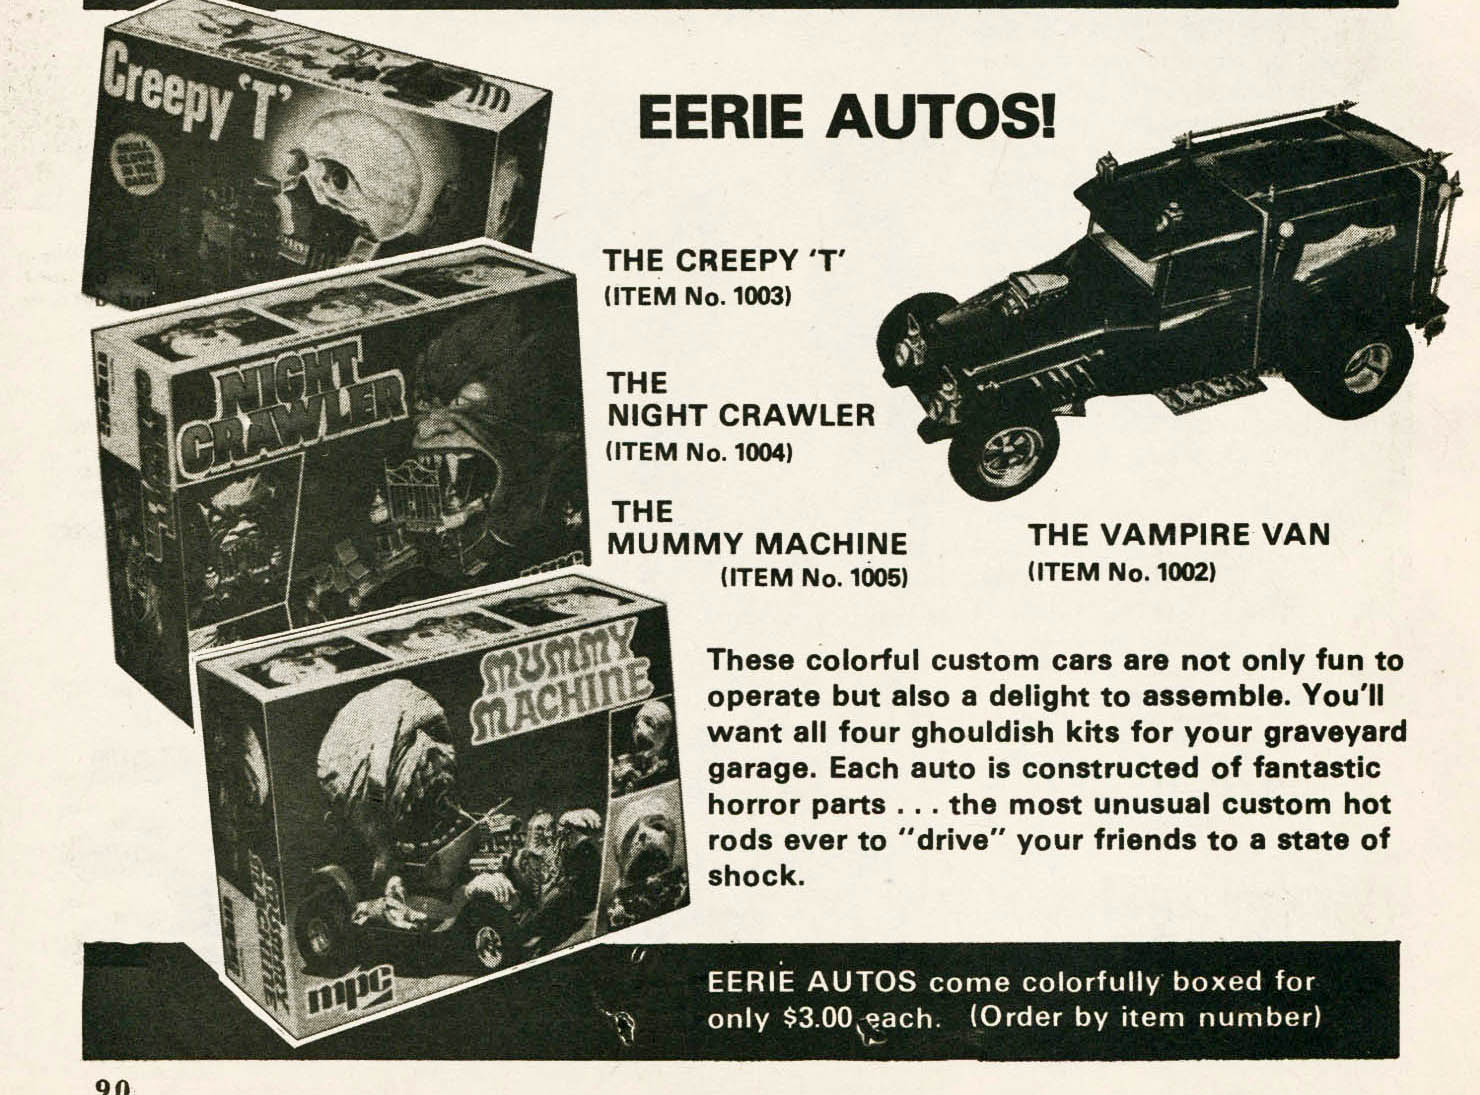 monster model car advert